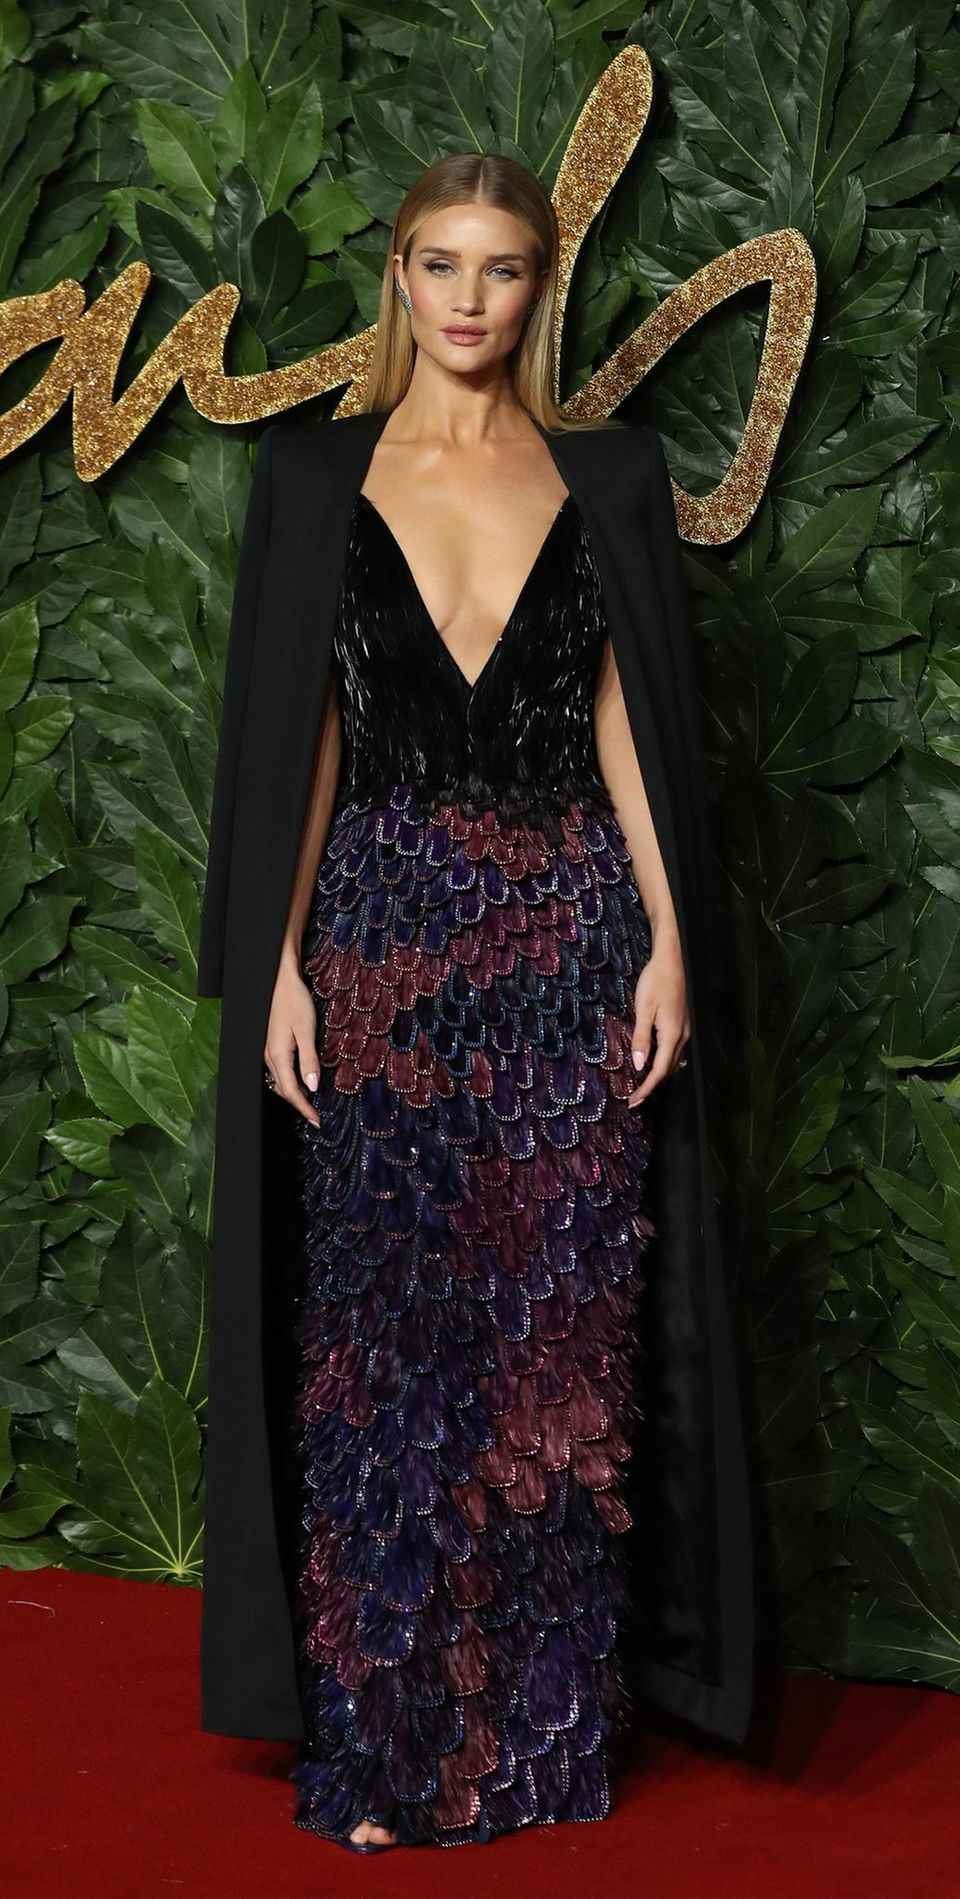 Tiefe Einblicke gewährt Rosie Huntington-Whiteley in ihrem Givenchy Haute Couture-Outfit.